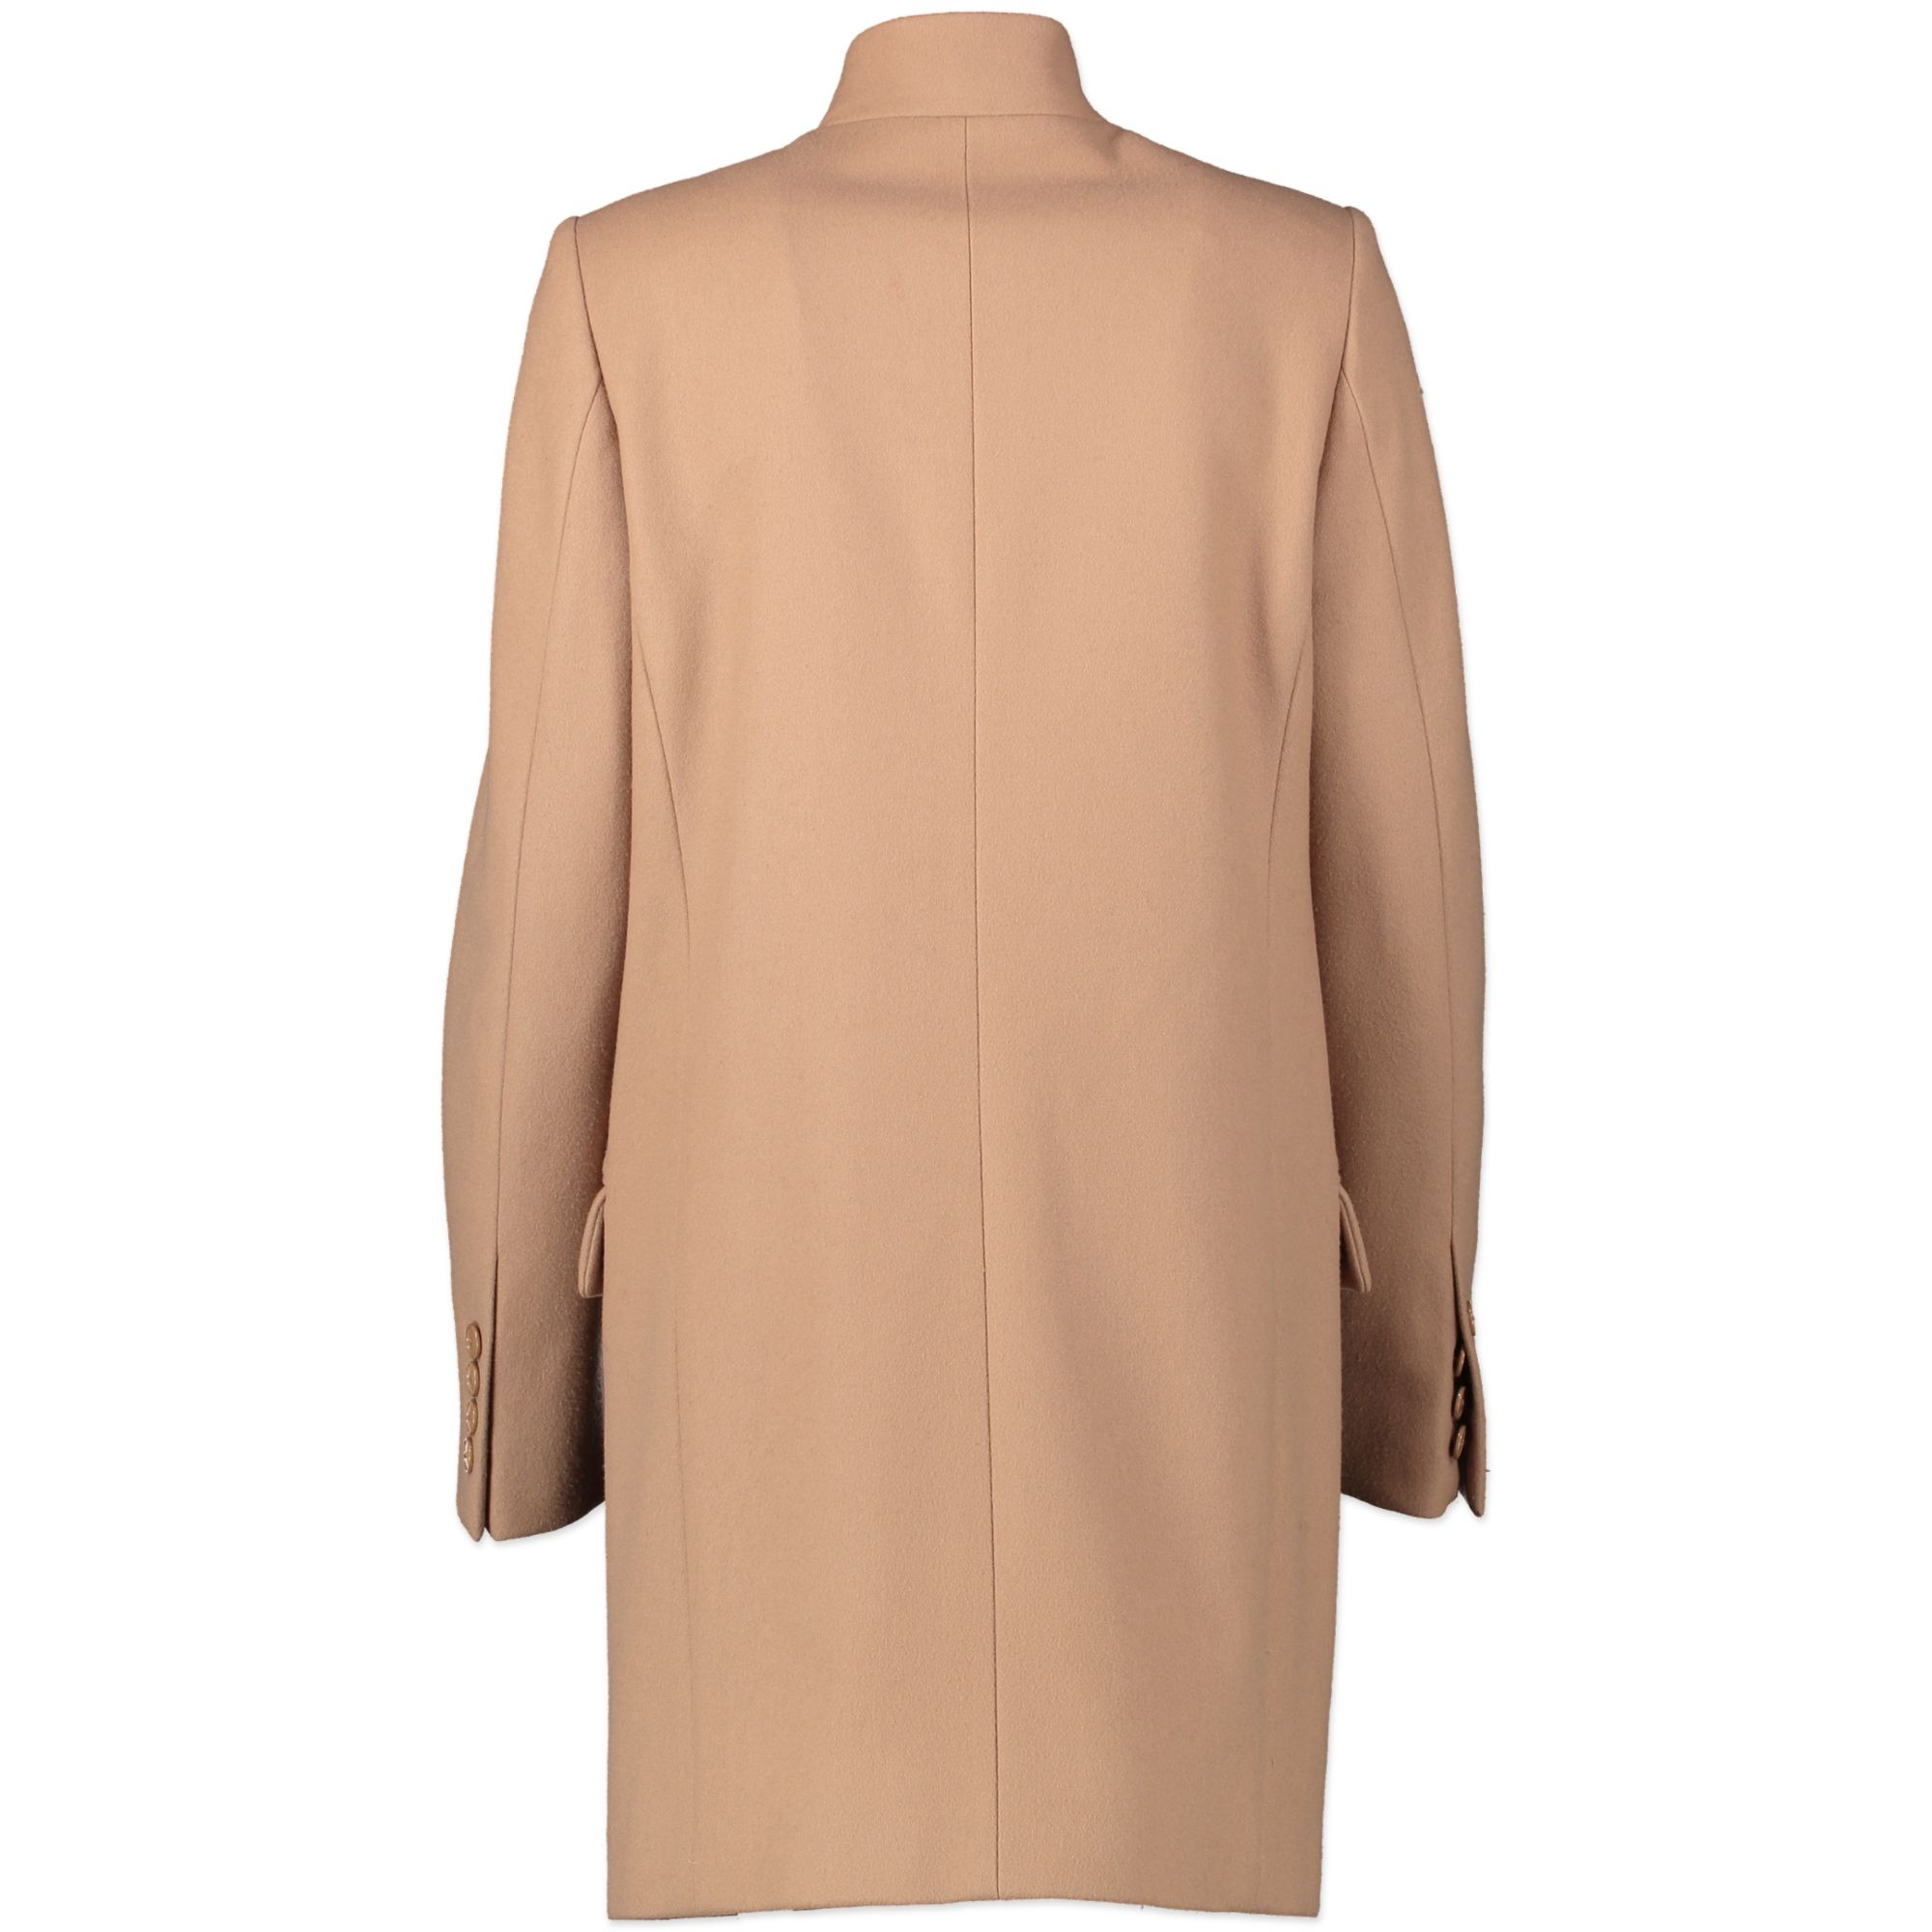 Buy and sell your authentic Stella McCartney Camel Coat - Size 38